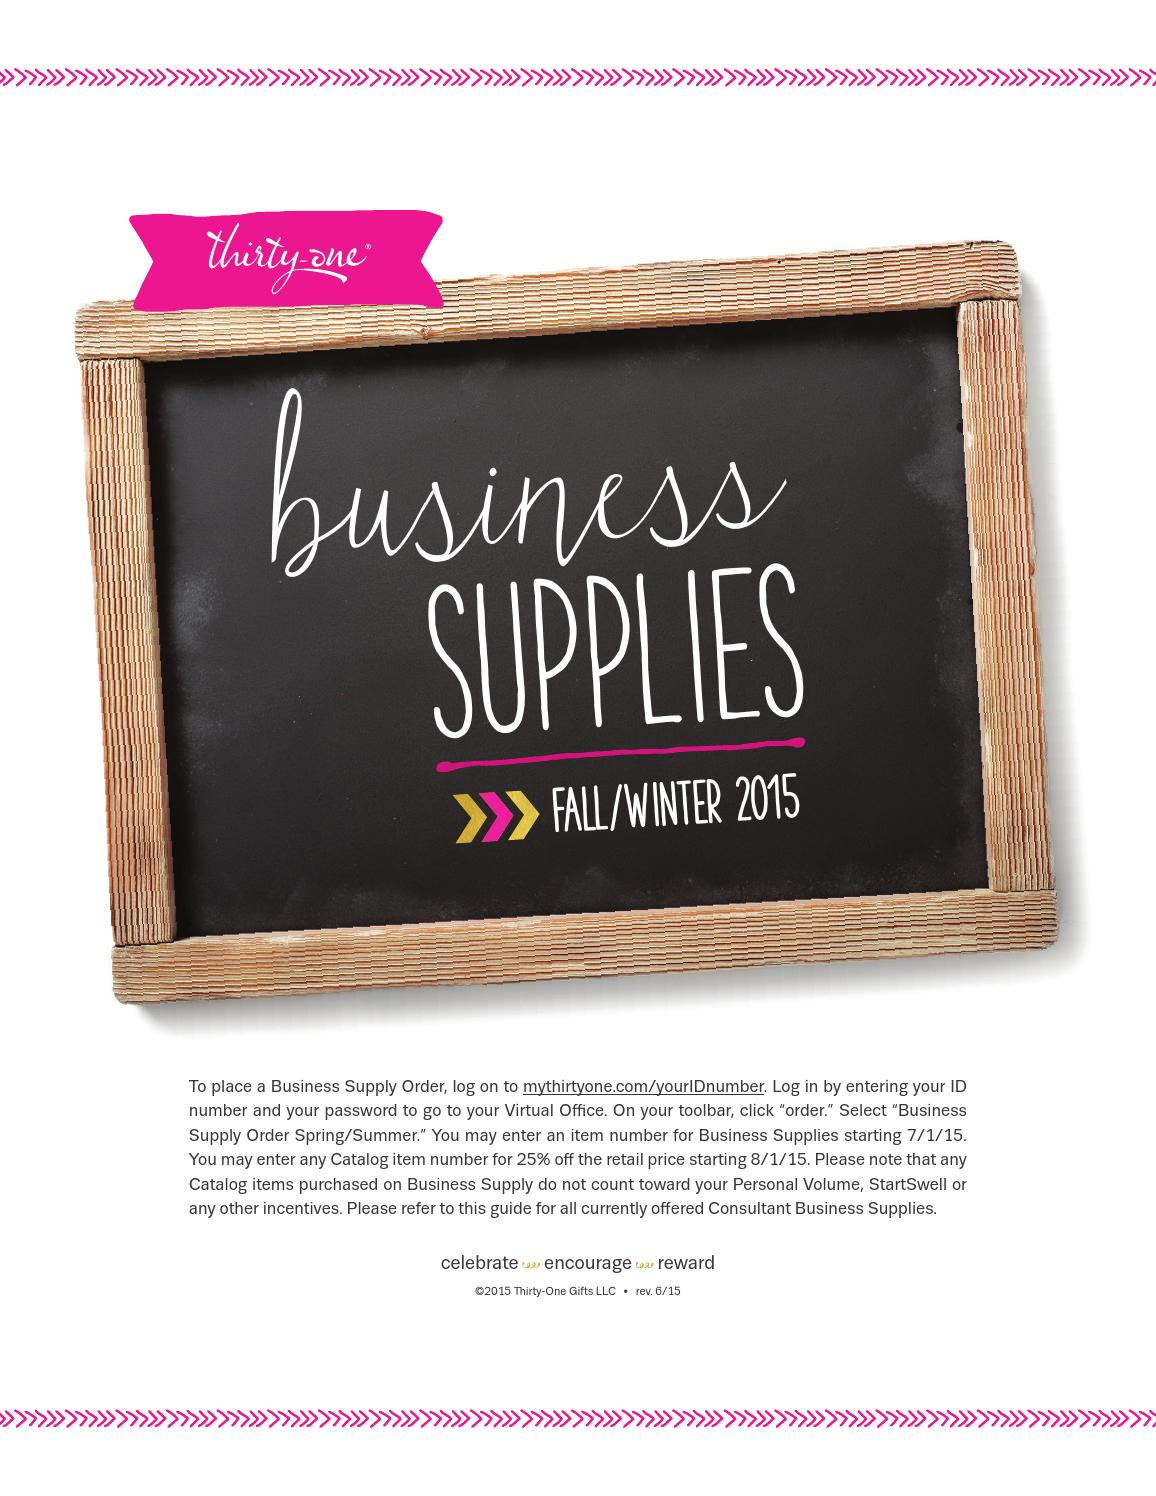 Business supply guide fallwinter 2015 by amywoodall31 issuu magicingreecefo Image collections